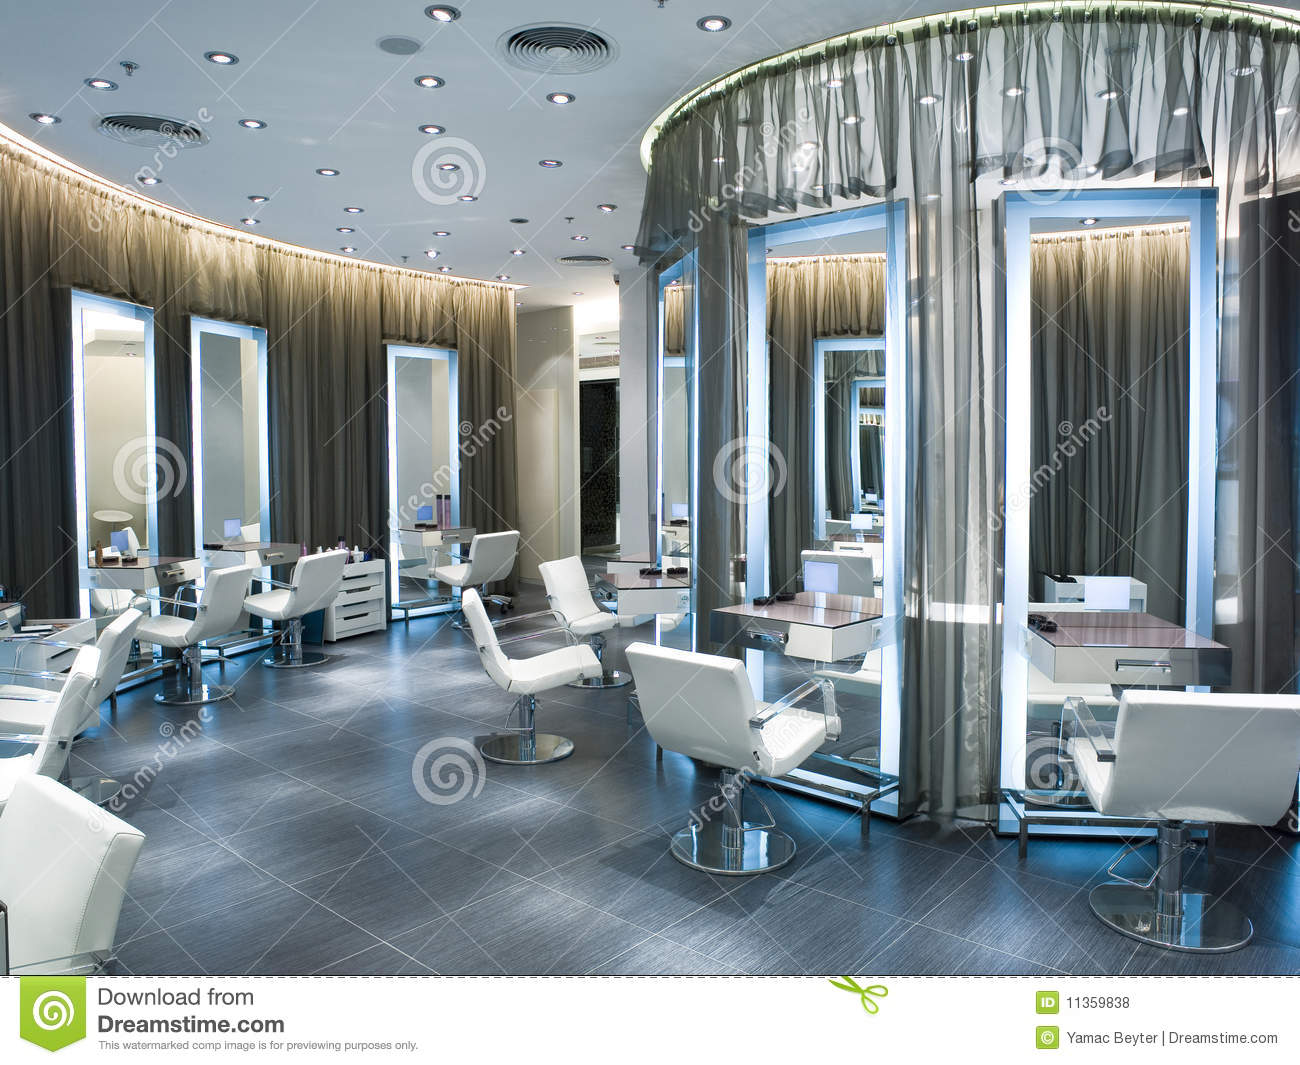 Royalty Free Stock Photos Beauty Salon Image 11359838